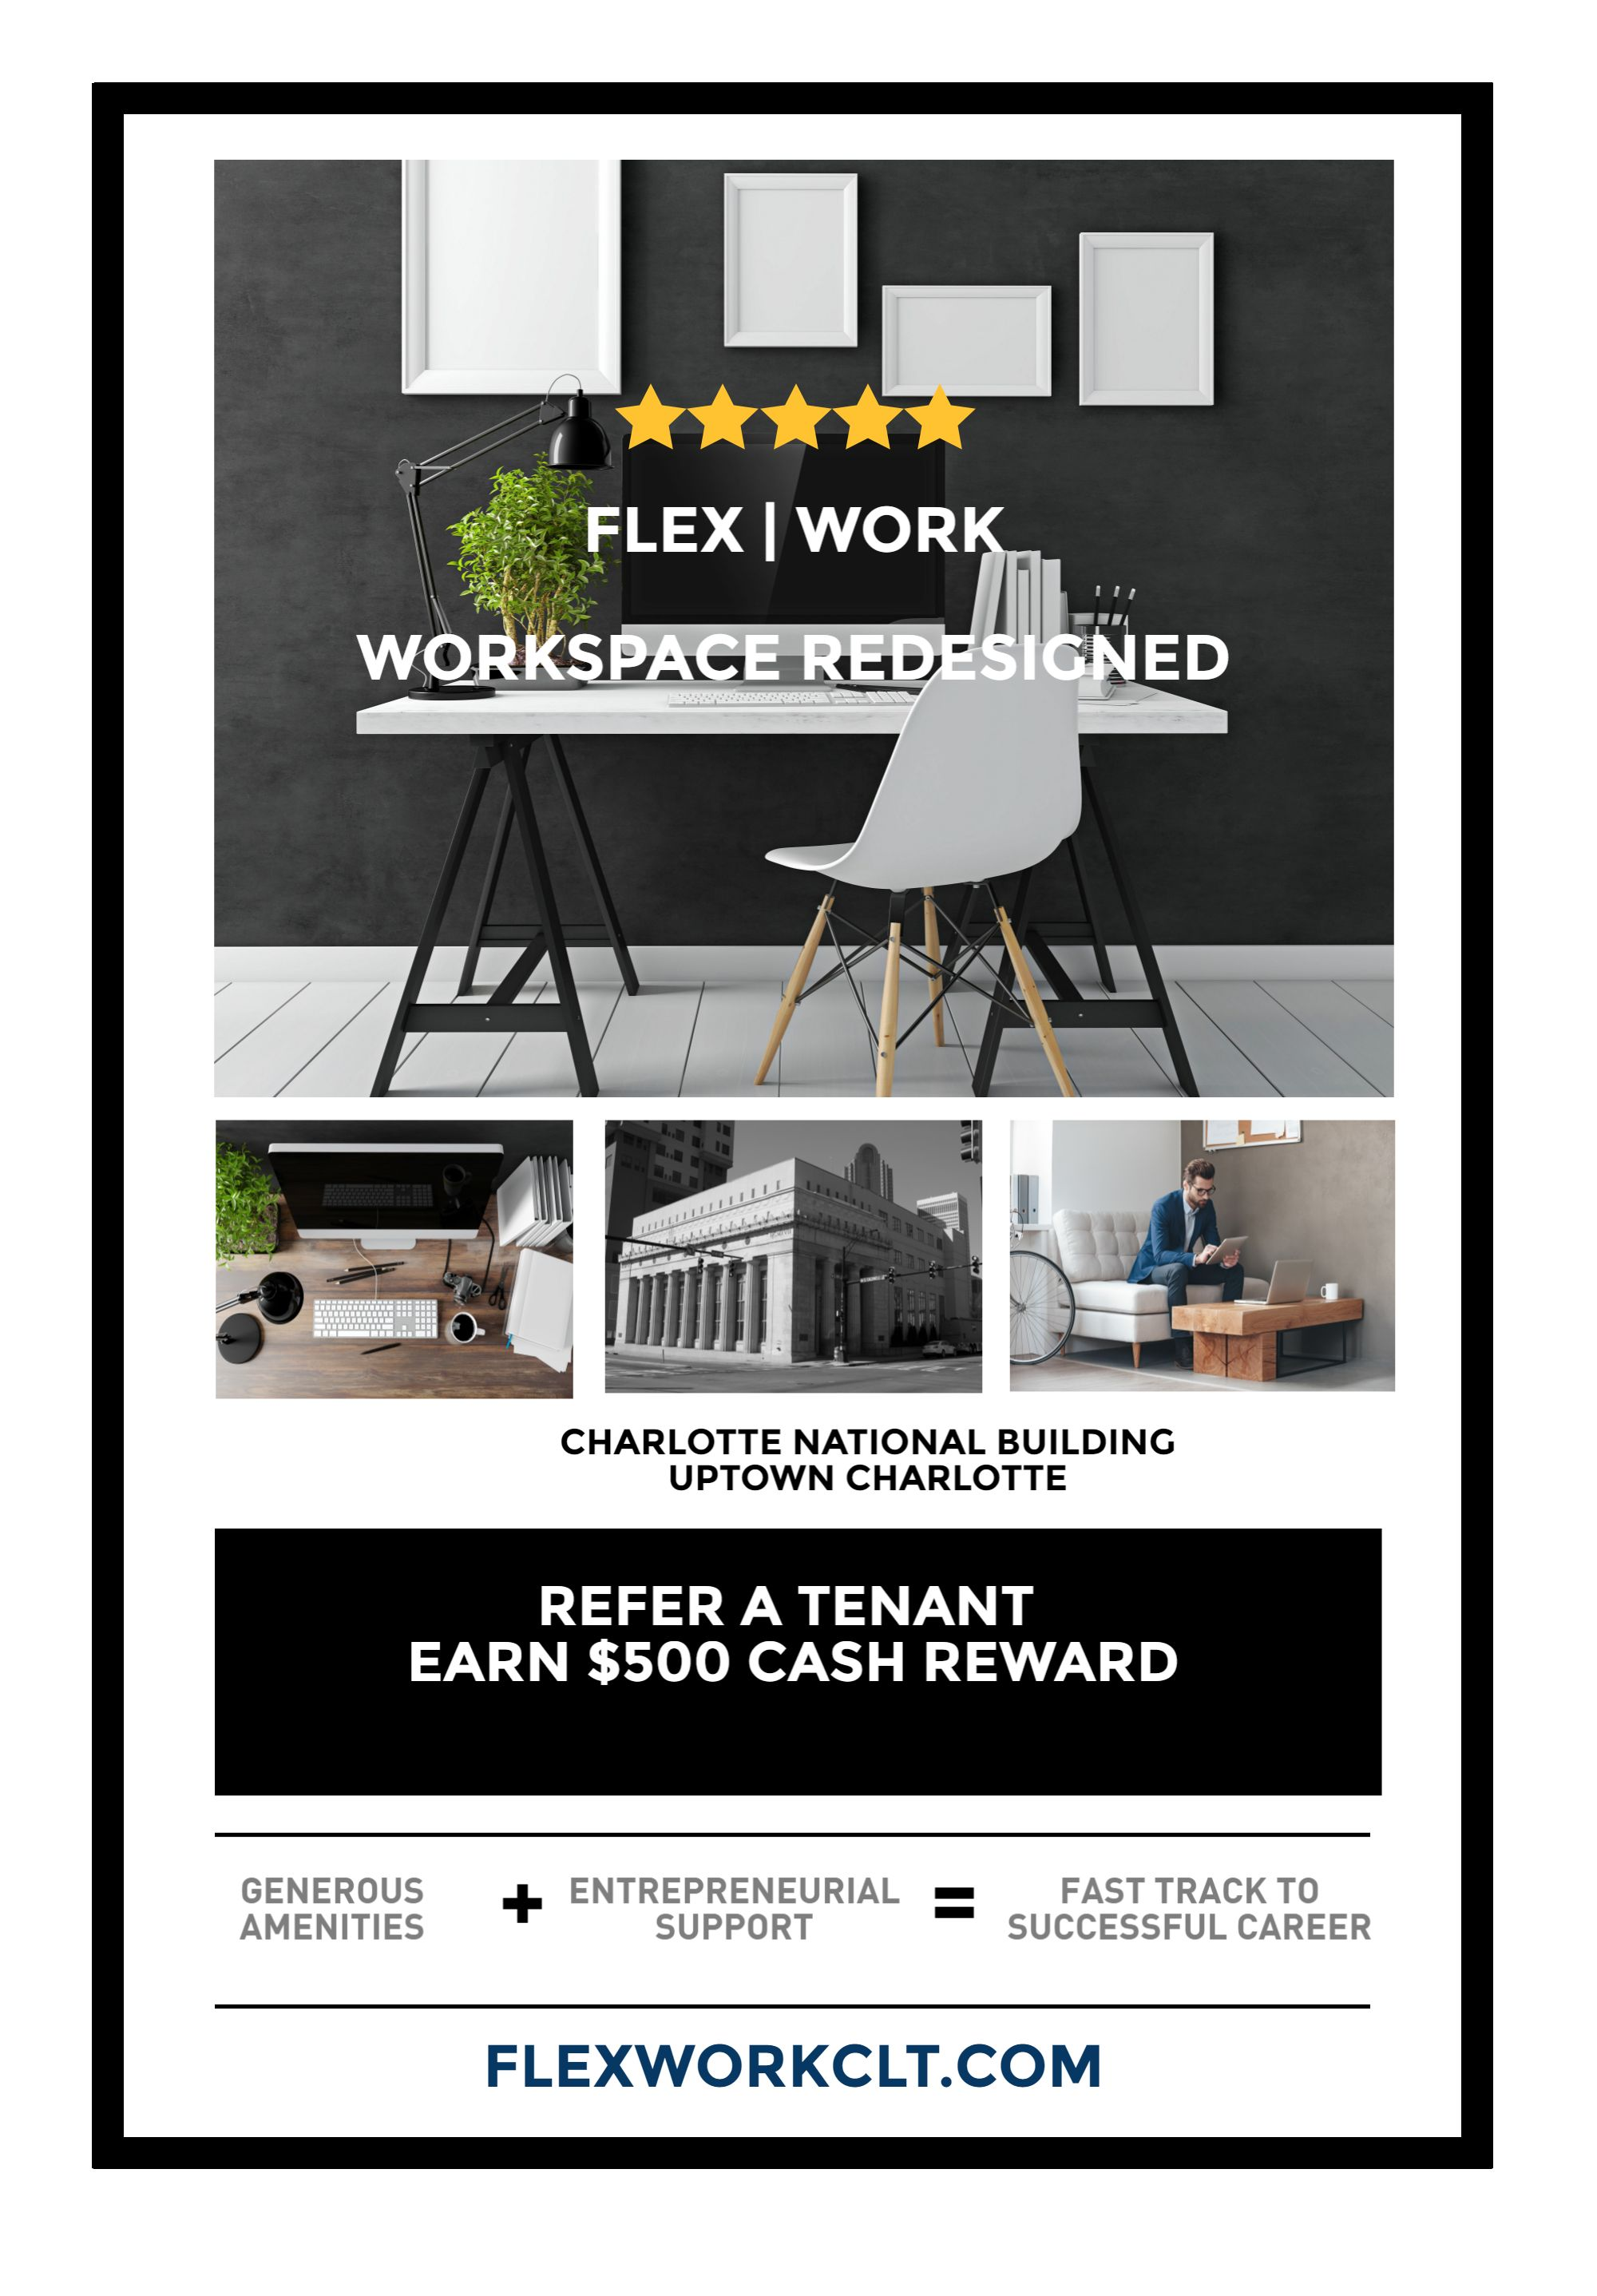 flex-work-office-rentals-charlotte-national-building-uptown-charlotte-nc-referral-rewards-program.jpg